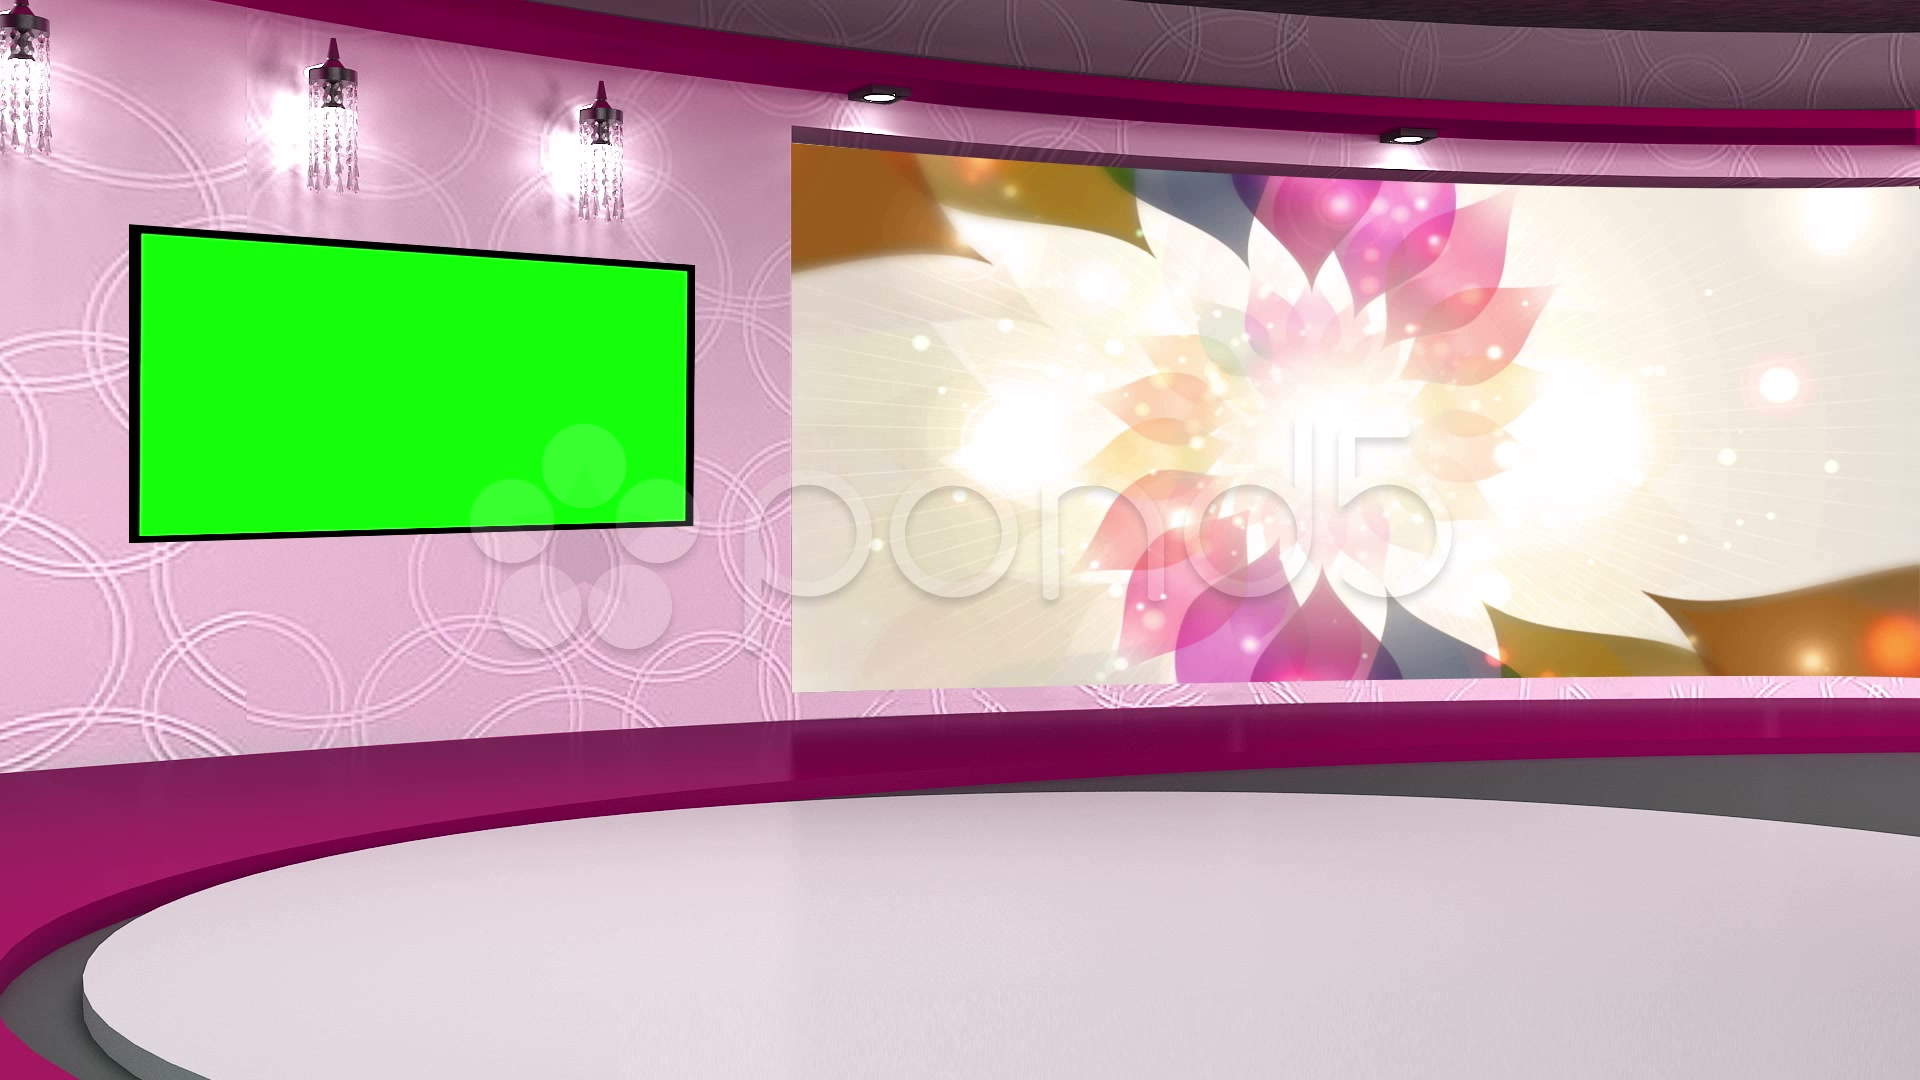 talkshow tv studio set 01 virtual green screen background loop   clip 38305007 final cut pro 7 user guide apple final cut pro user guide